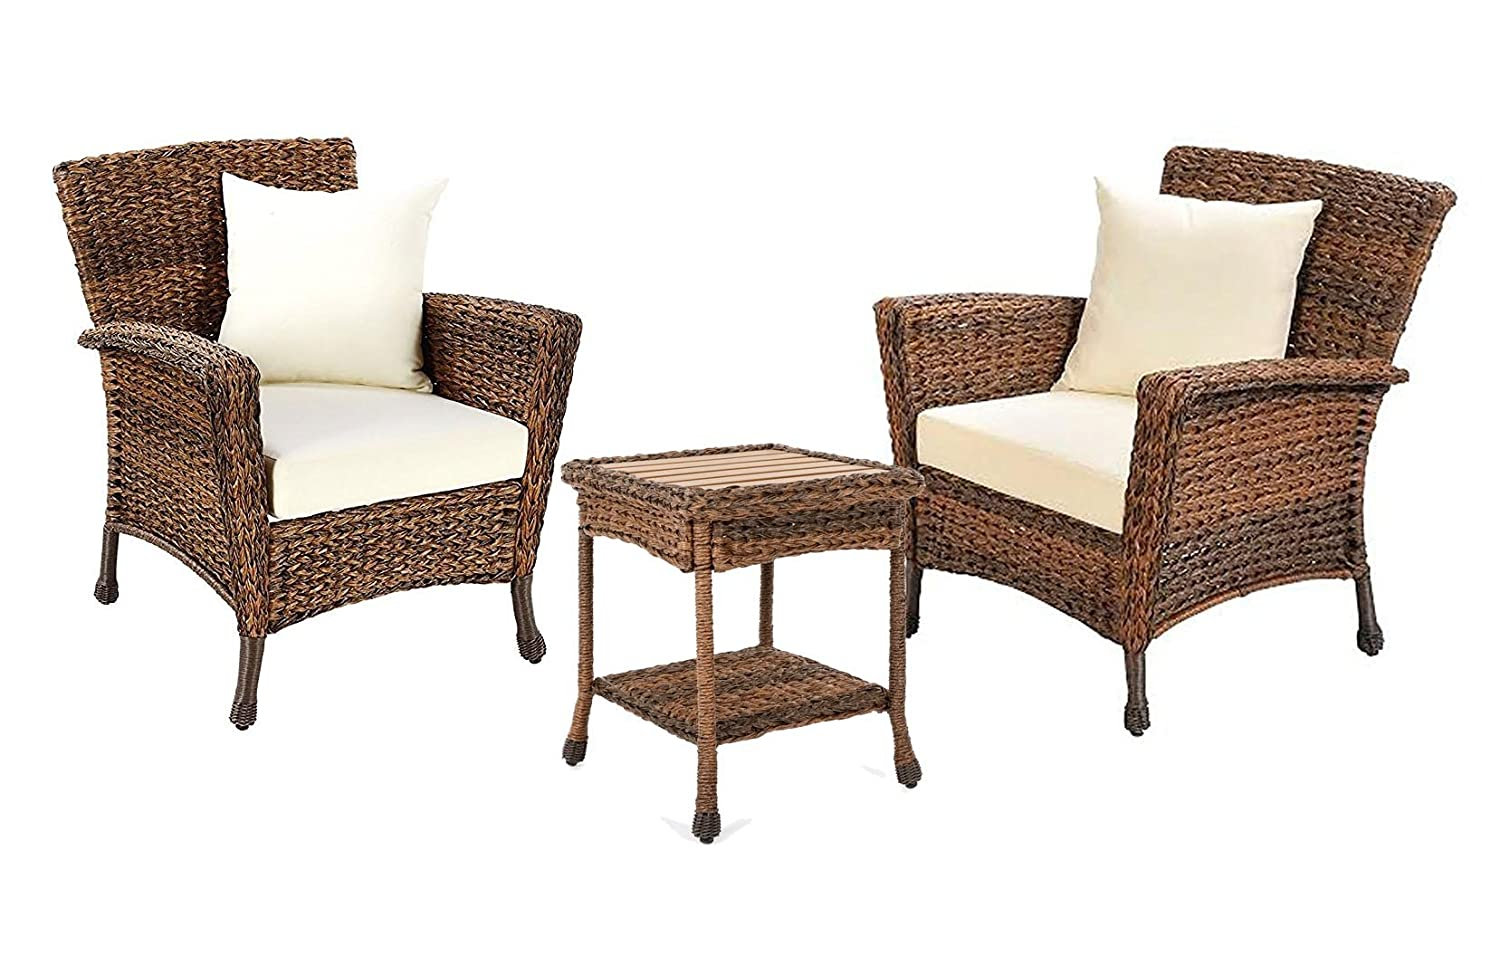 W unlimited rustic collection outdoor furniture light brown rattan wicker garden patio furniture bistro set lounger deep seating sectional cushions 3